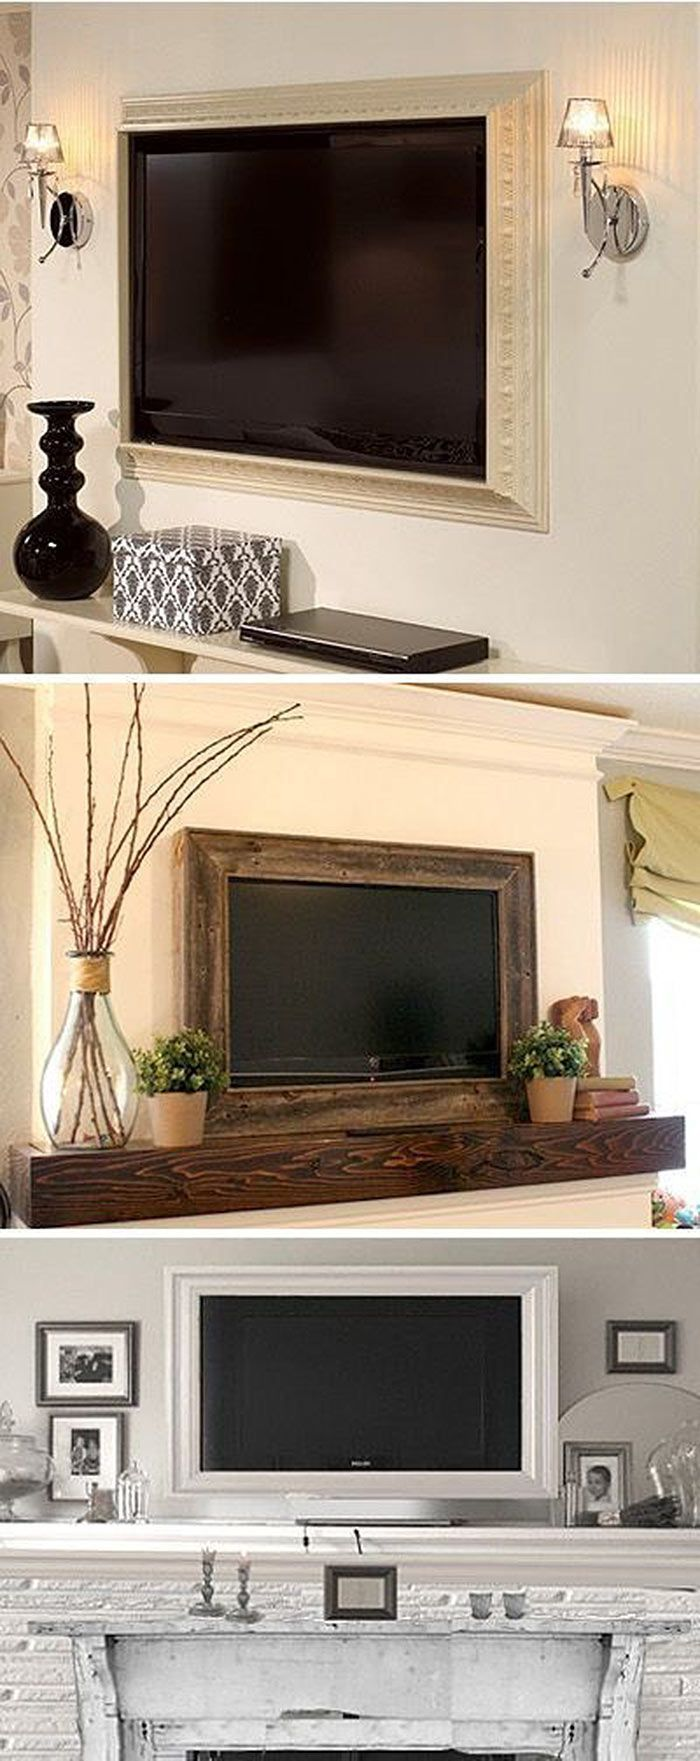 Best 25 Inexpensive home decor ideas on Pinterest Rustic